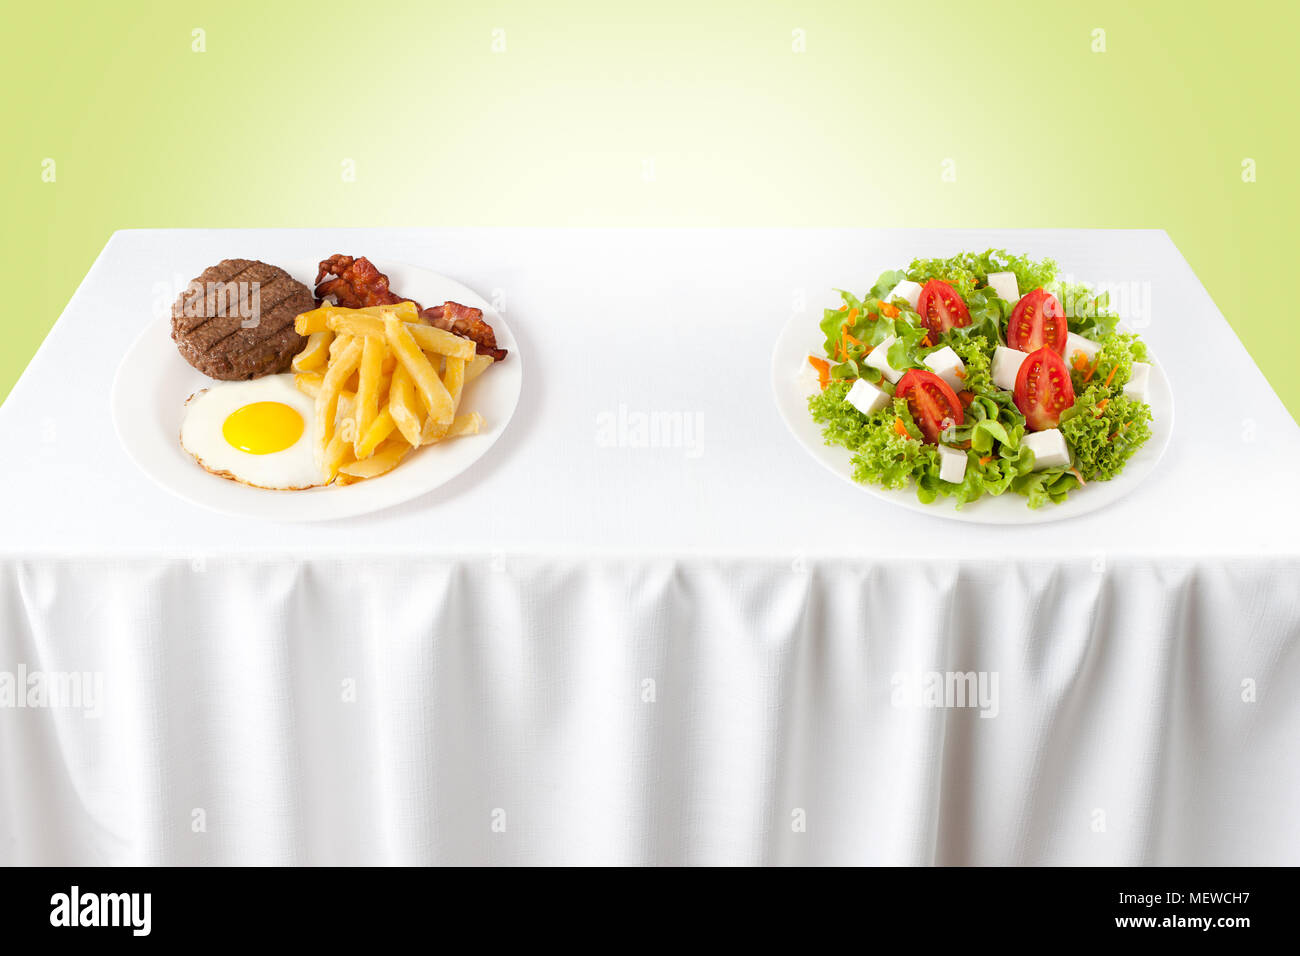 Contrasting healthy versus junk food - Stock Image